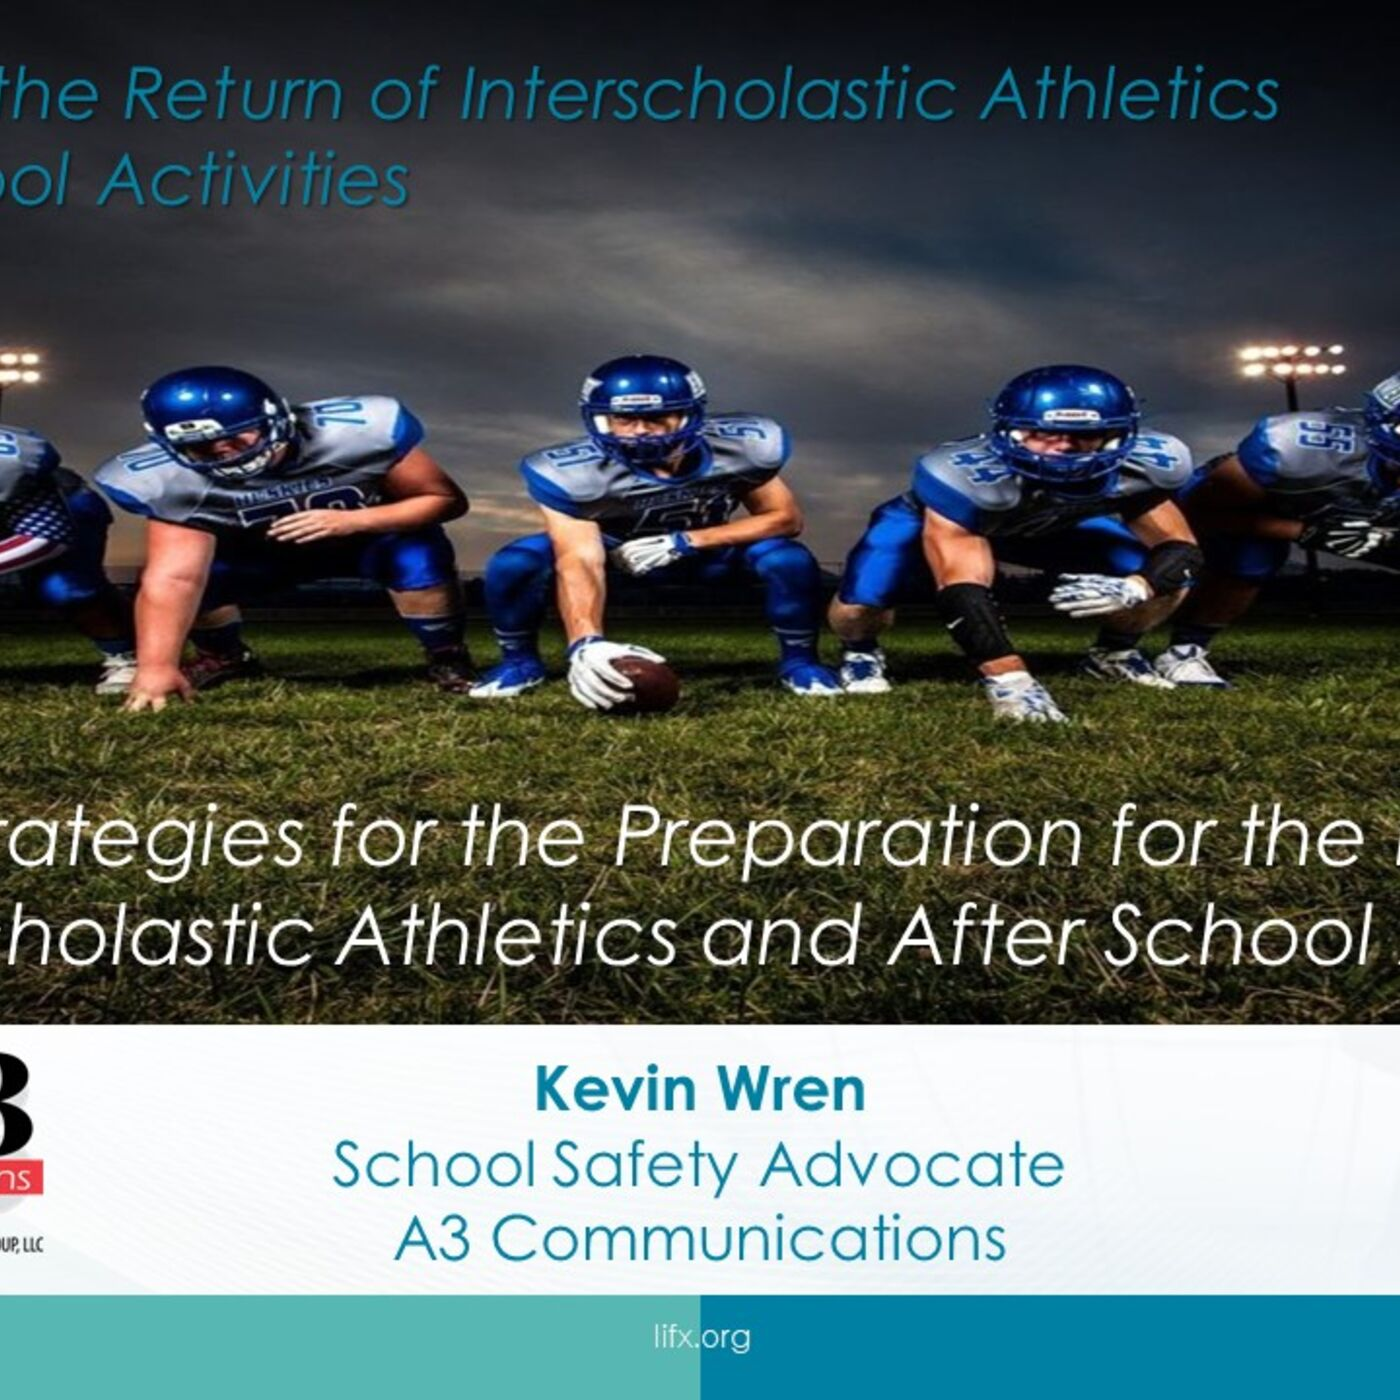 Session 1 - Key Strategies for the Preparation for the Return of Interscholastic Athletics and Afterschool Activities